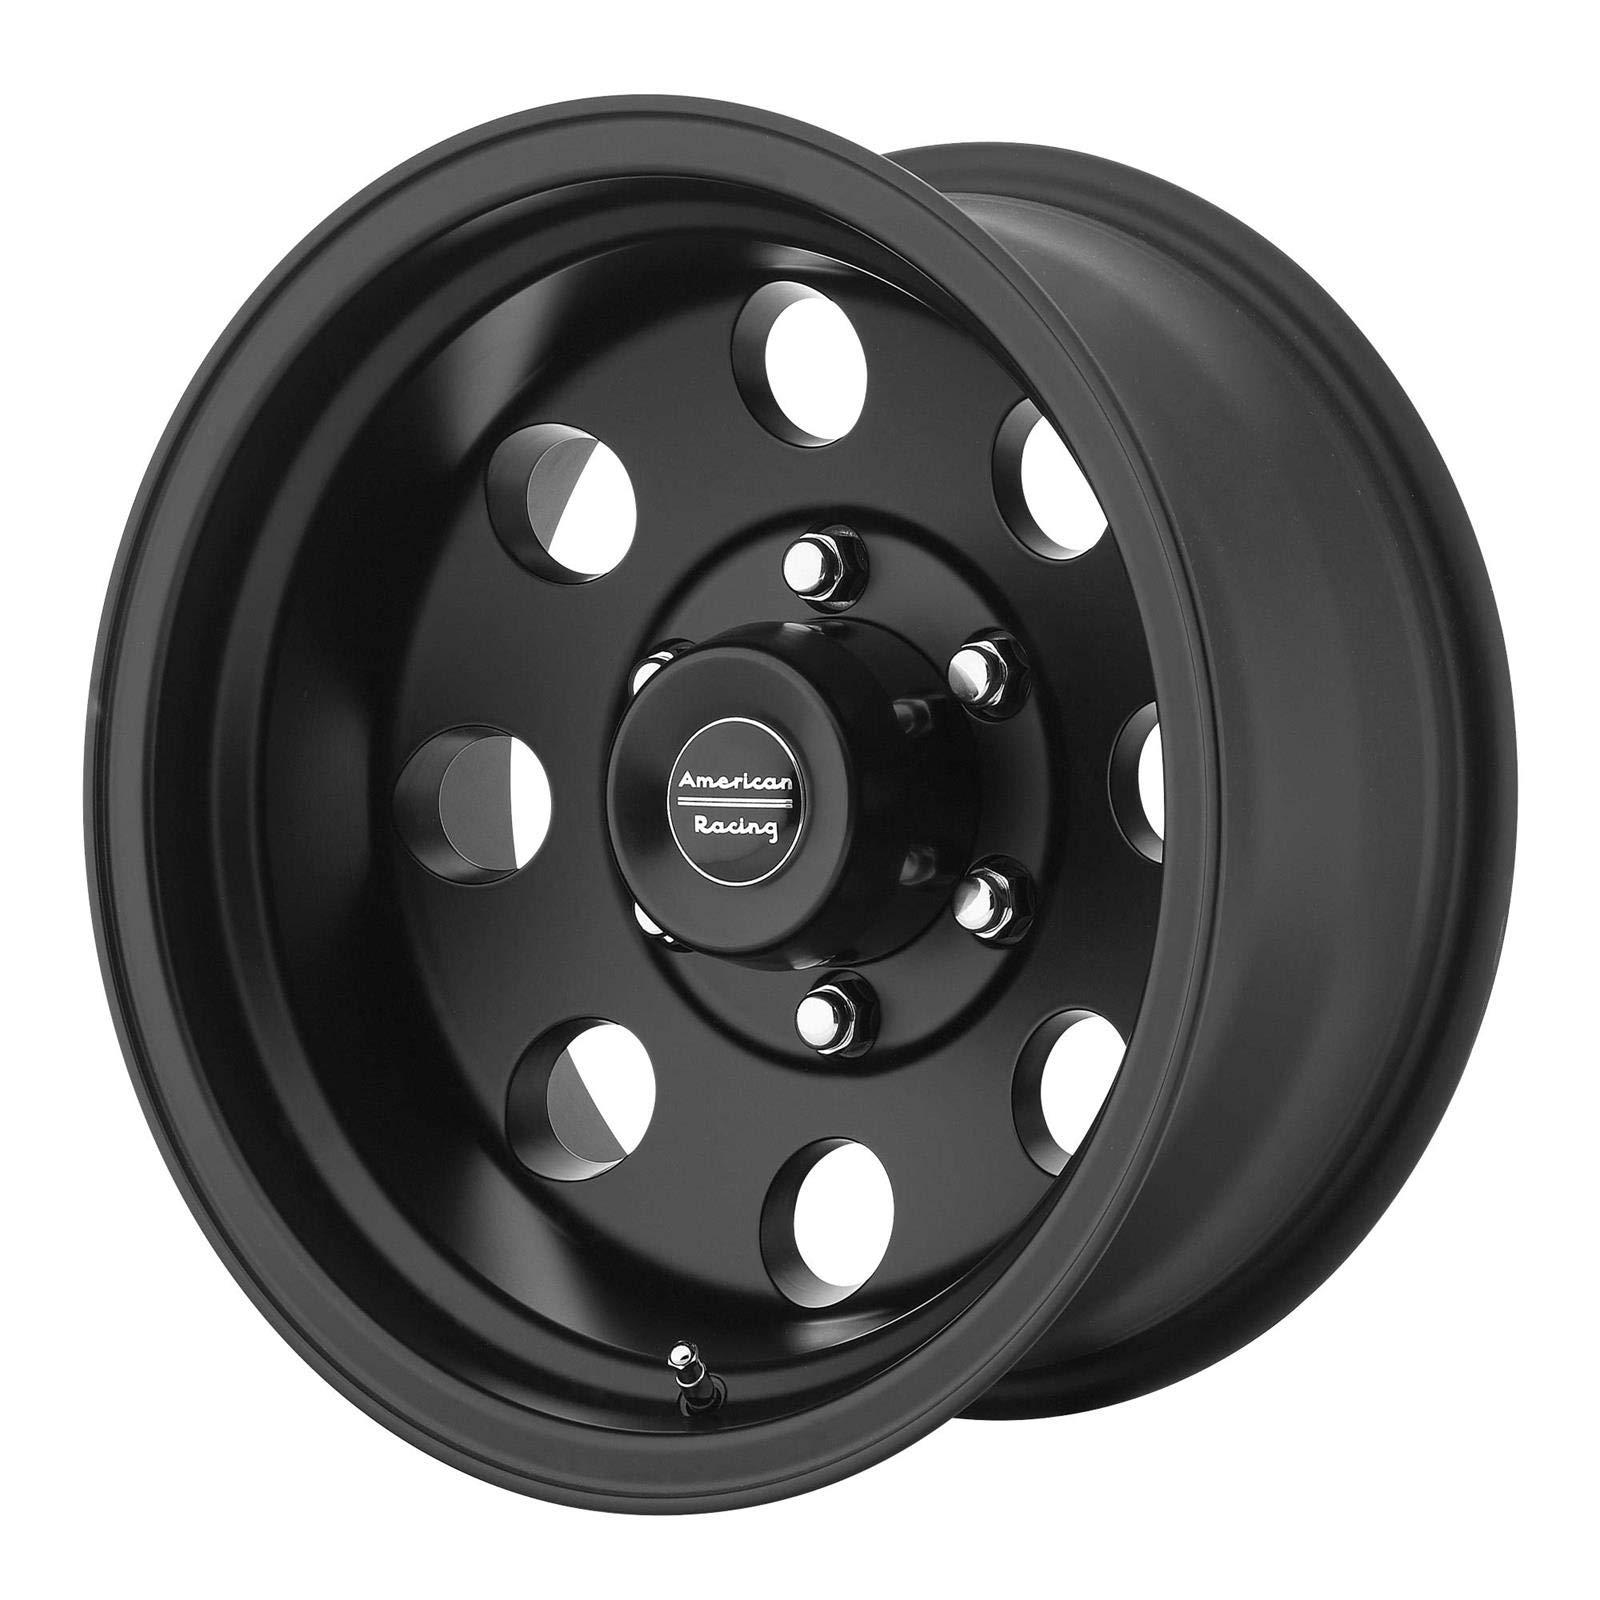 American Racing AR172 Baja Satin Black Wheel (16x10''/5x135mm, -25mm offset)